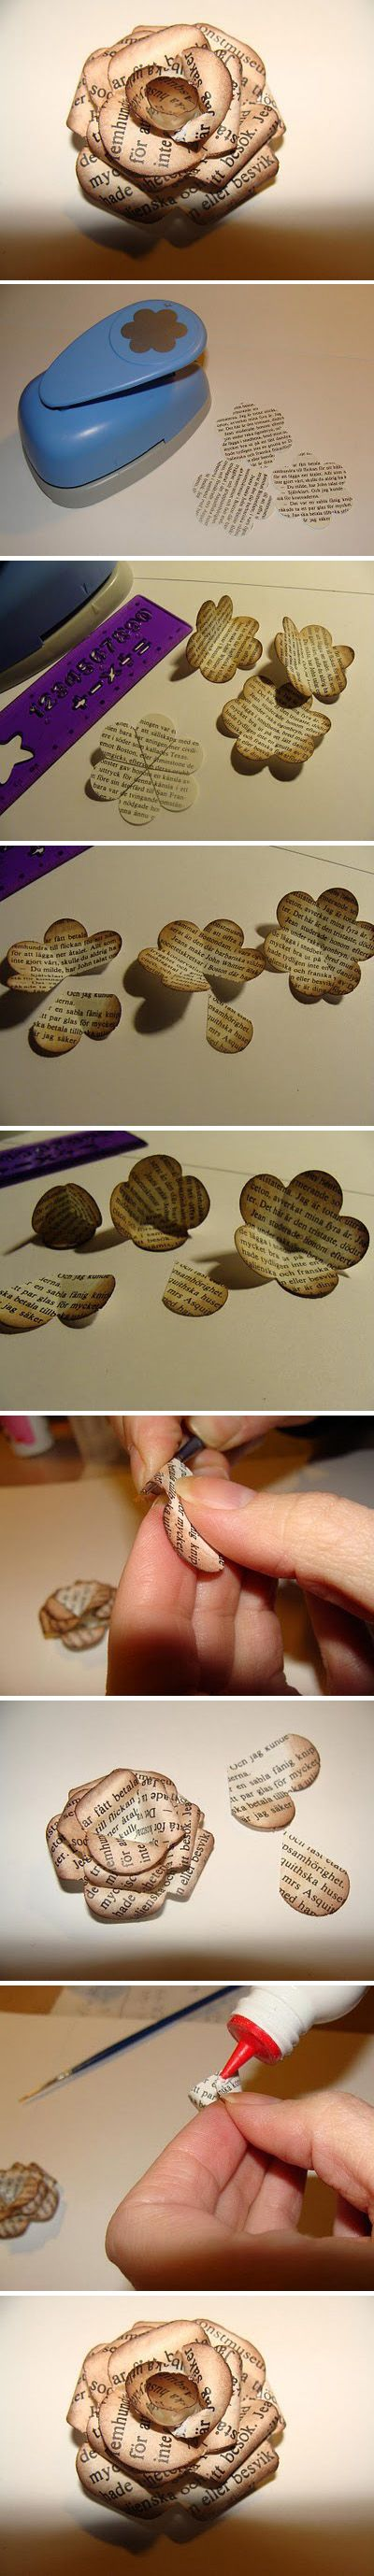 Punch Tutorials And Brooches On Pinterest